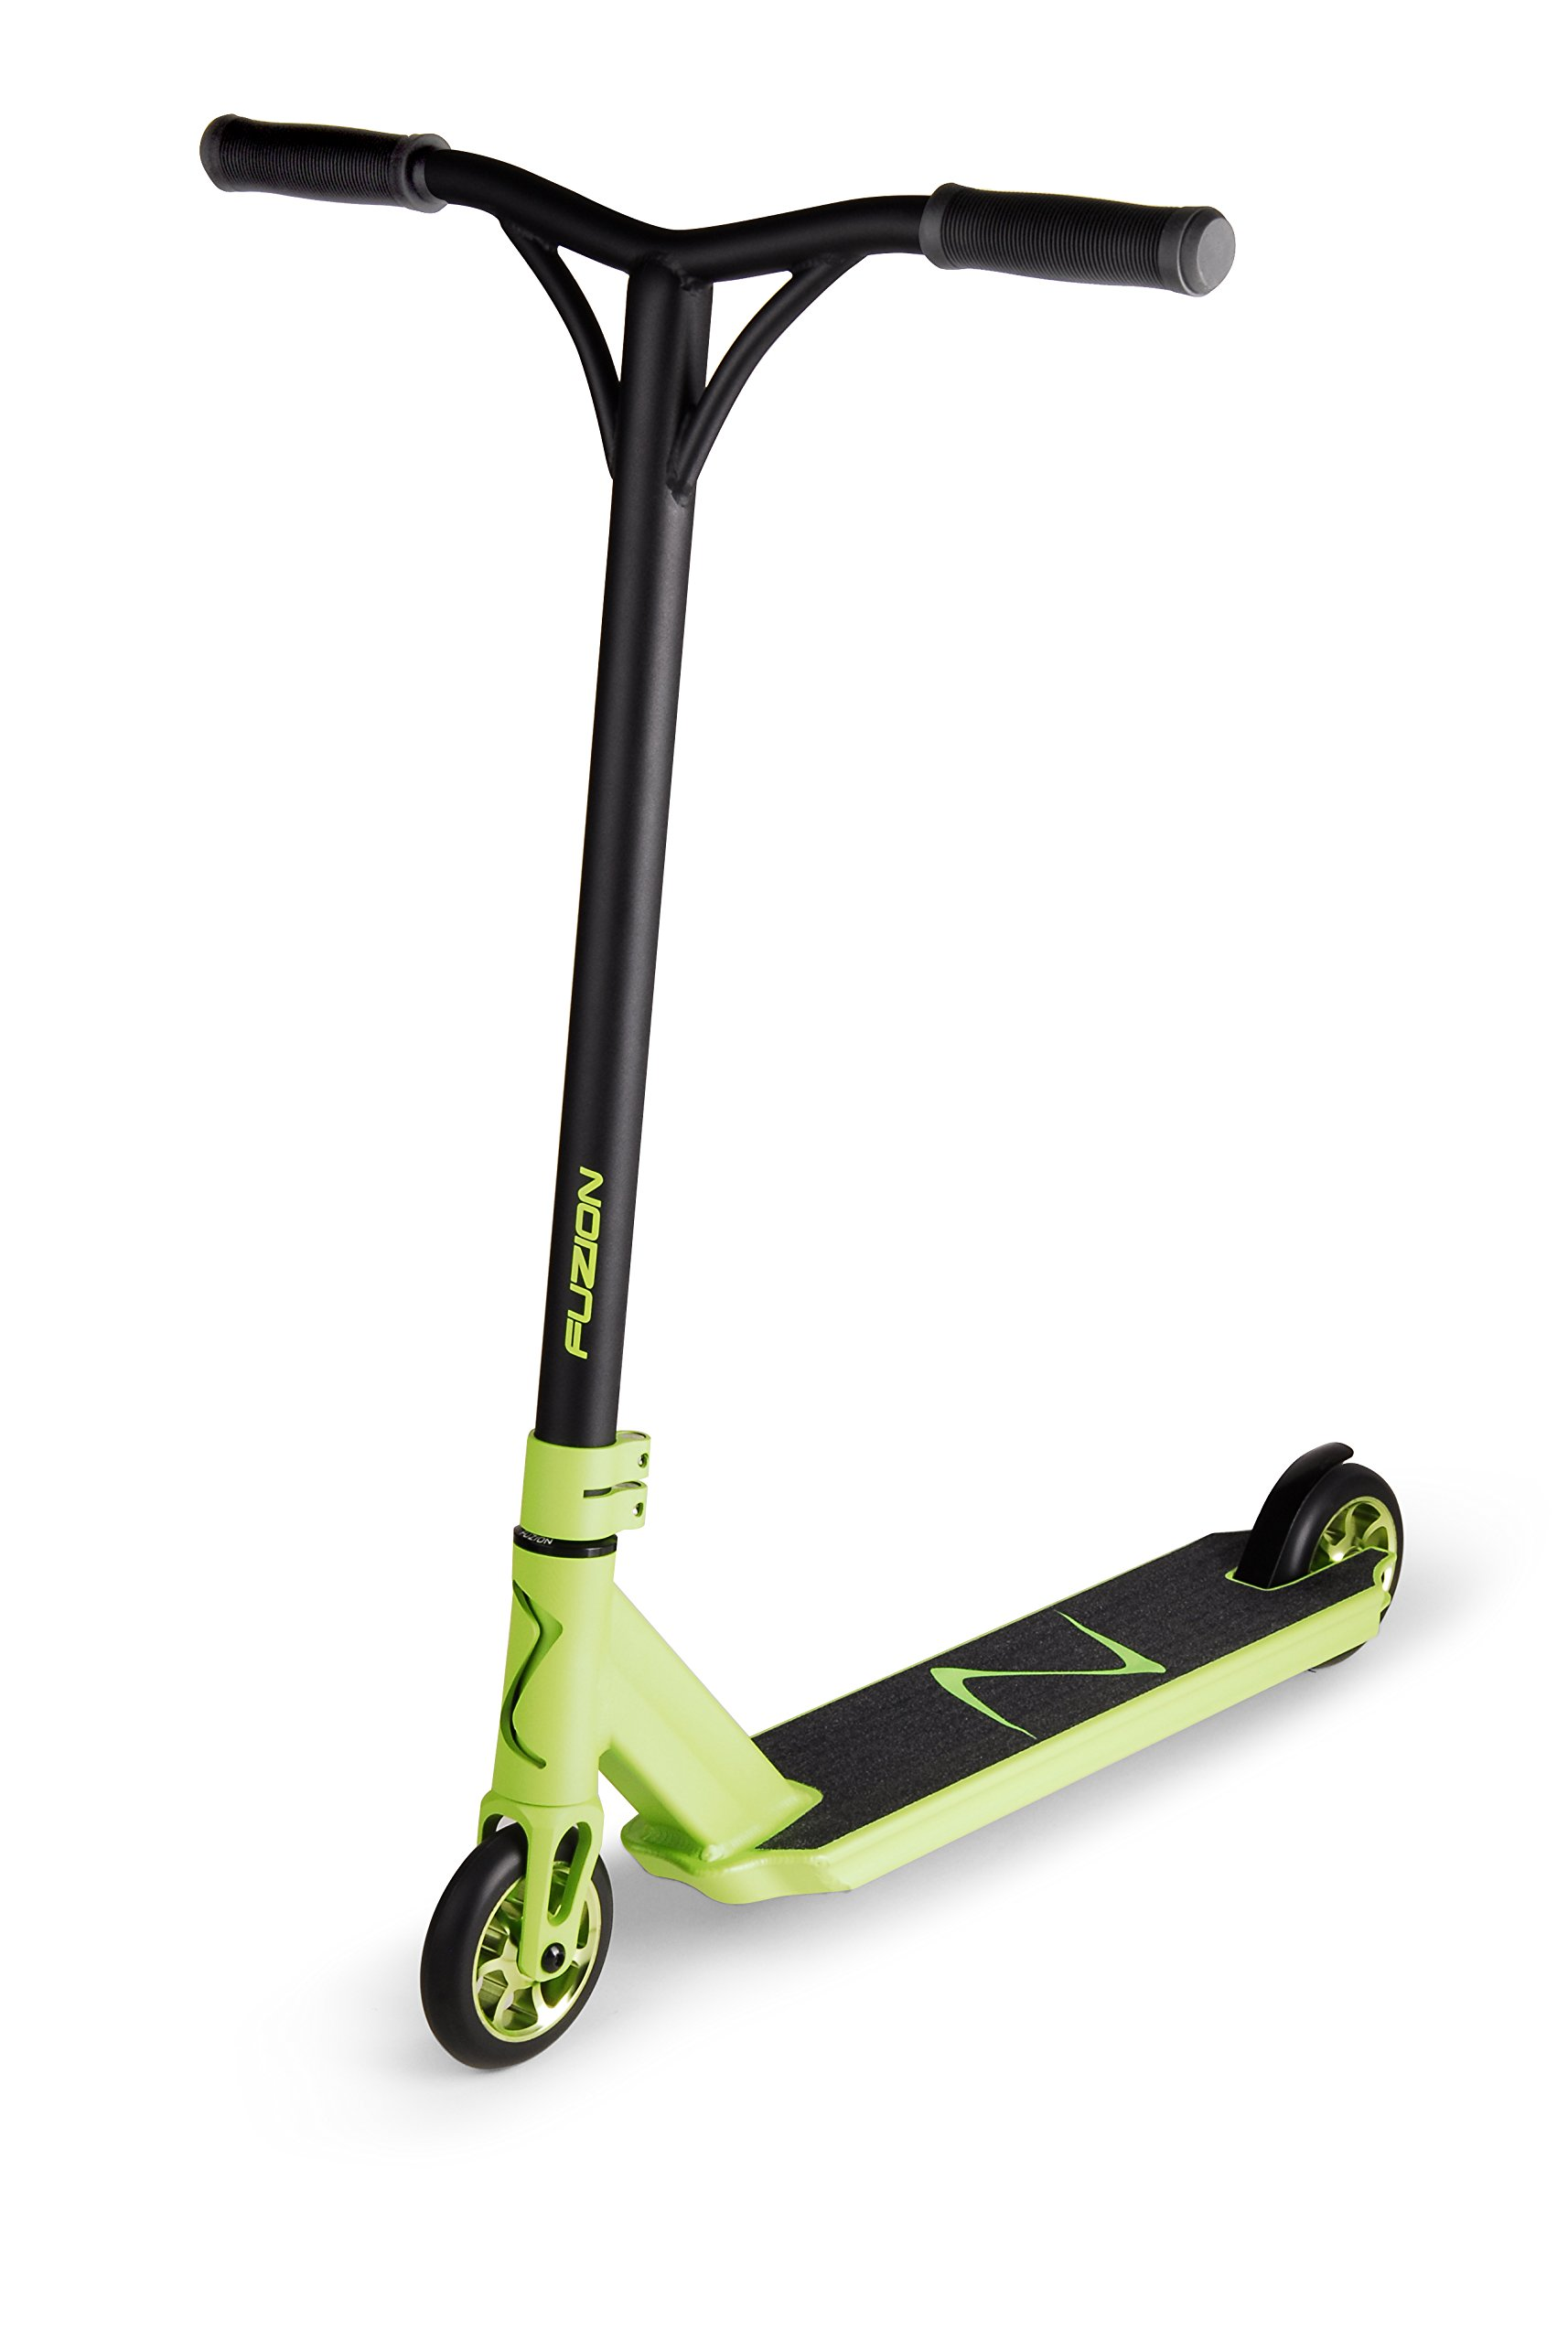 Fuzion Z350 Pro Scooter (2017 NEON GREEN) by Fuzion